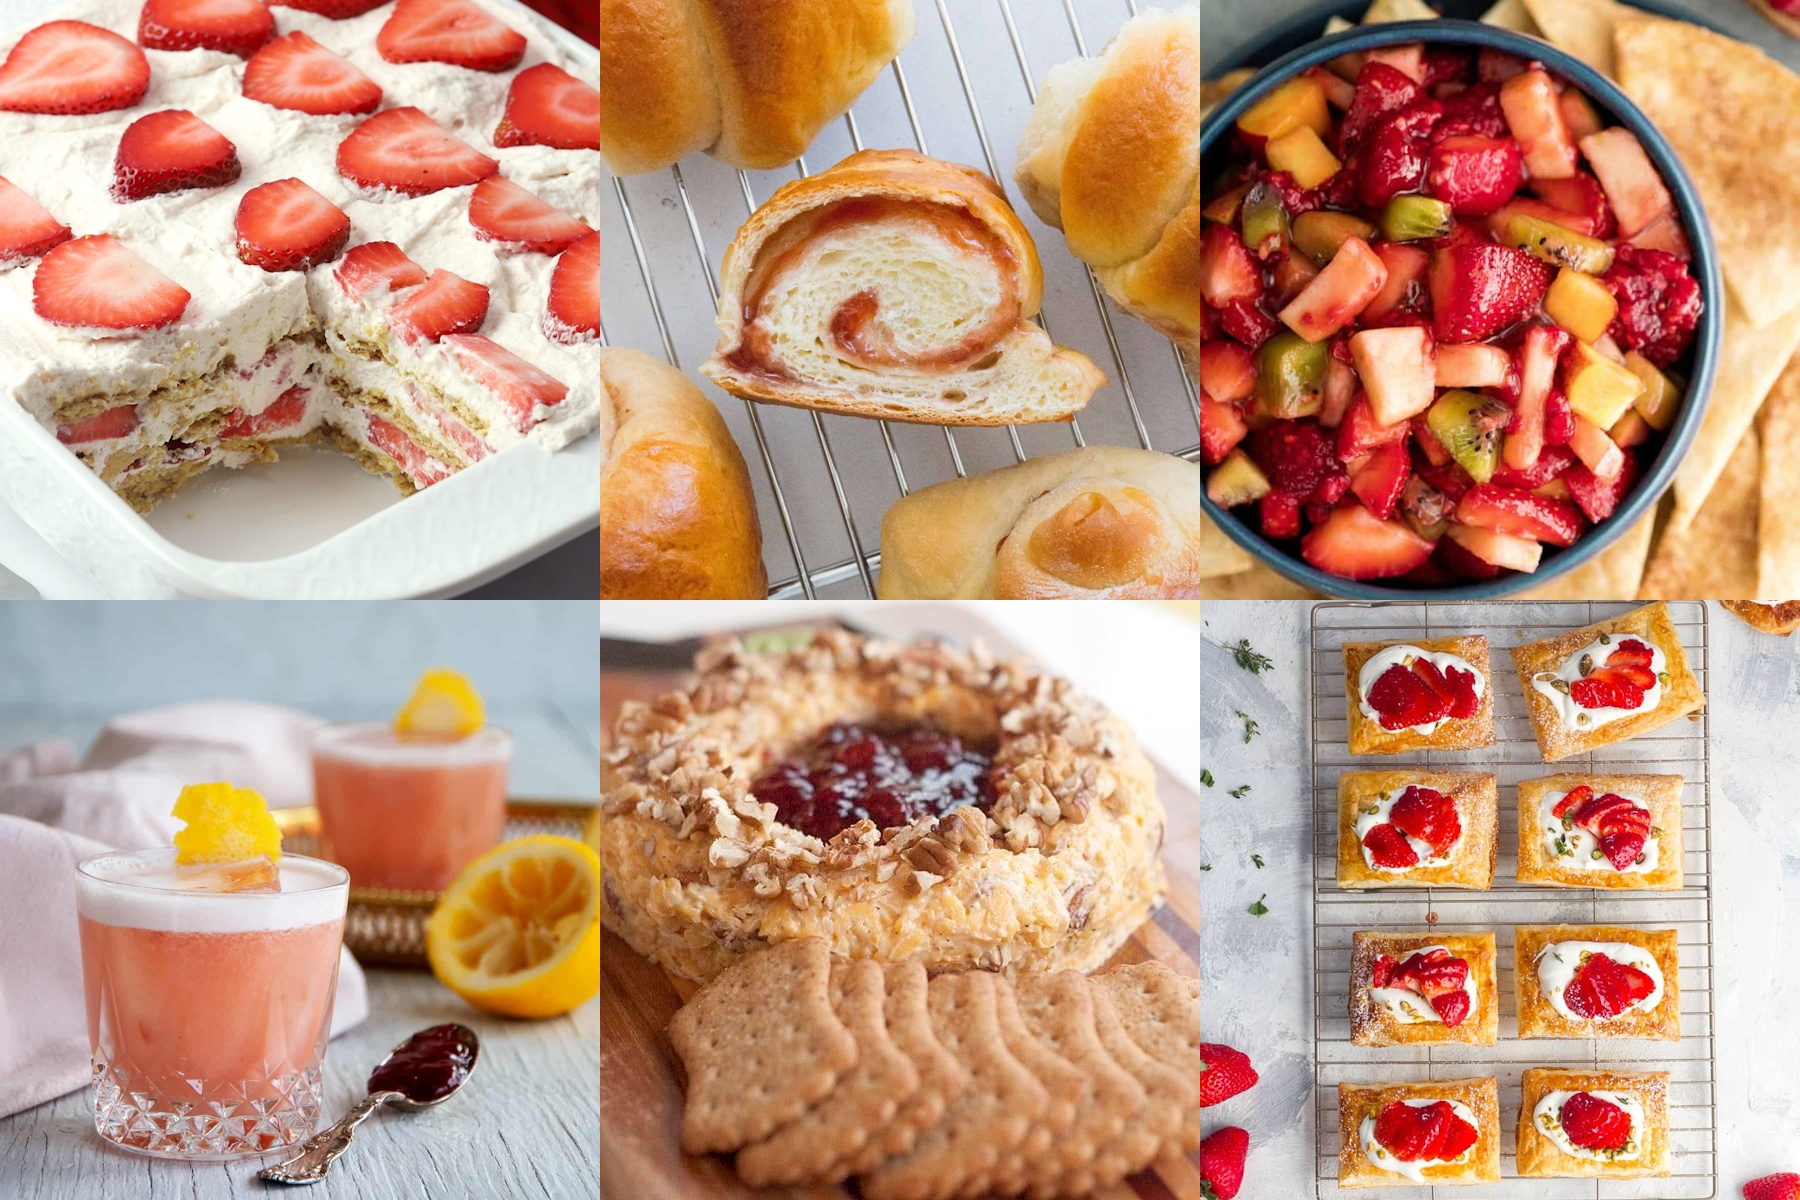 A collage of foods using strawberry jam as an ingredient.